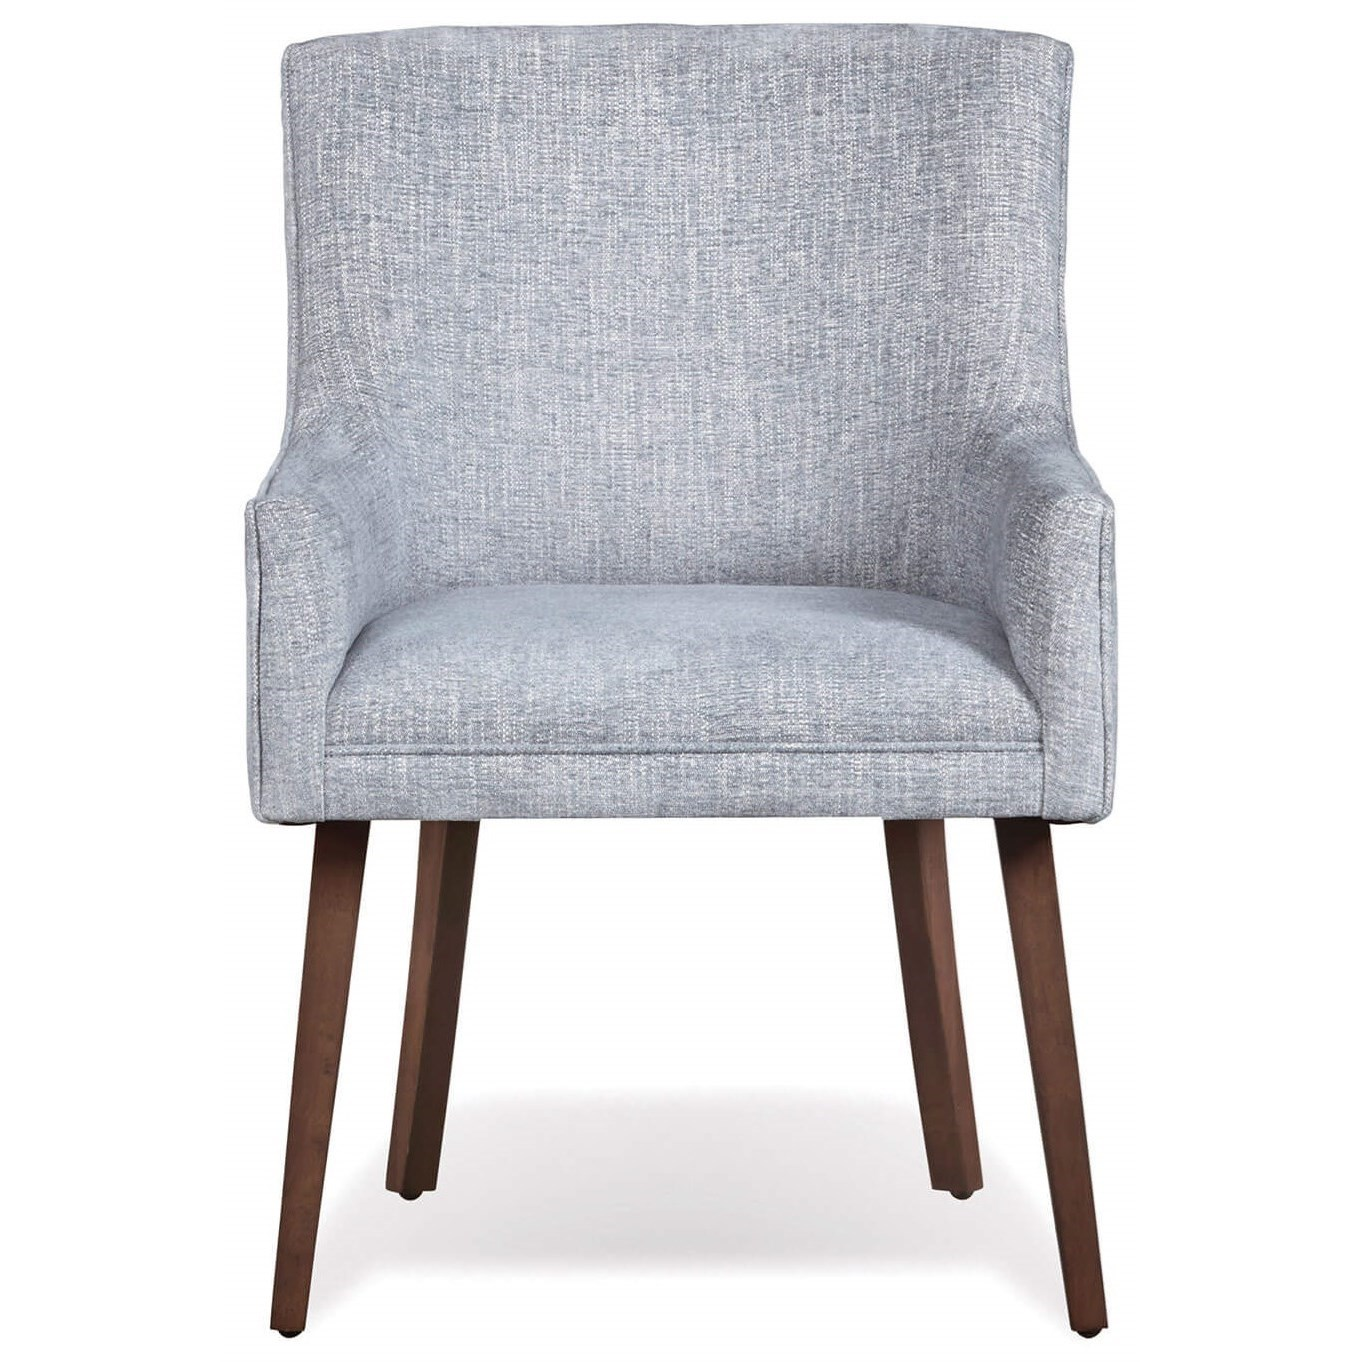 Boulevard Arch Arm Chair by Palliser at Stoney Creek Furniture